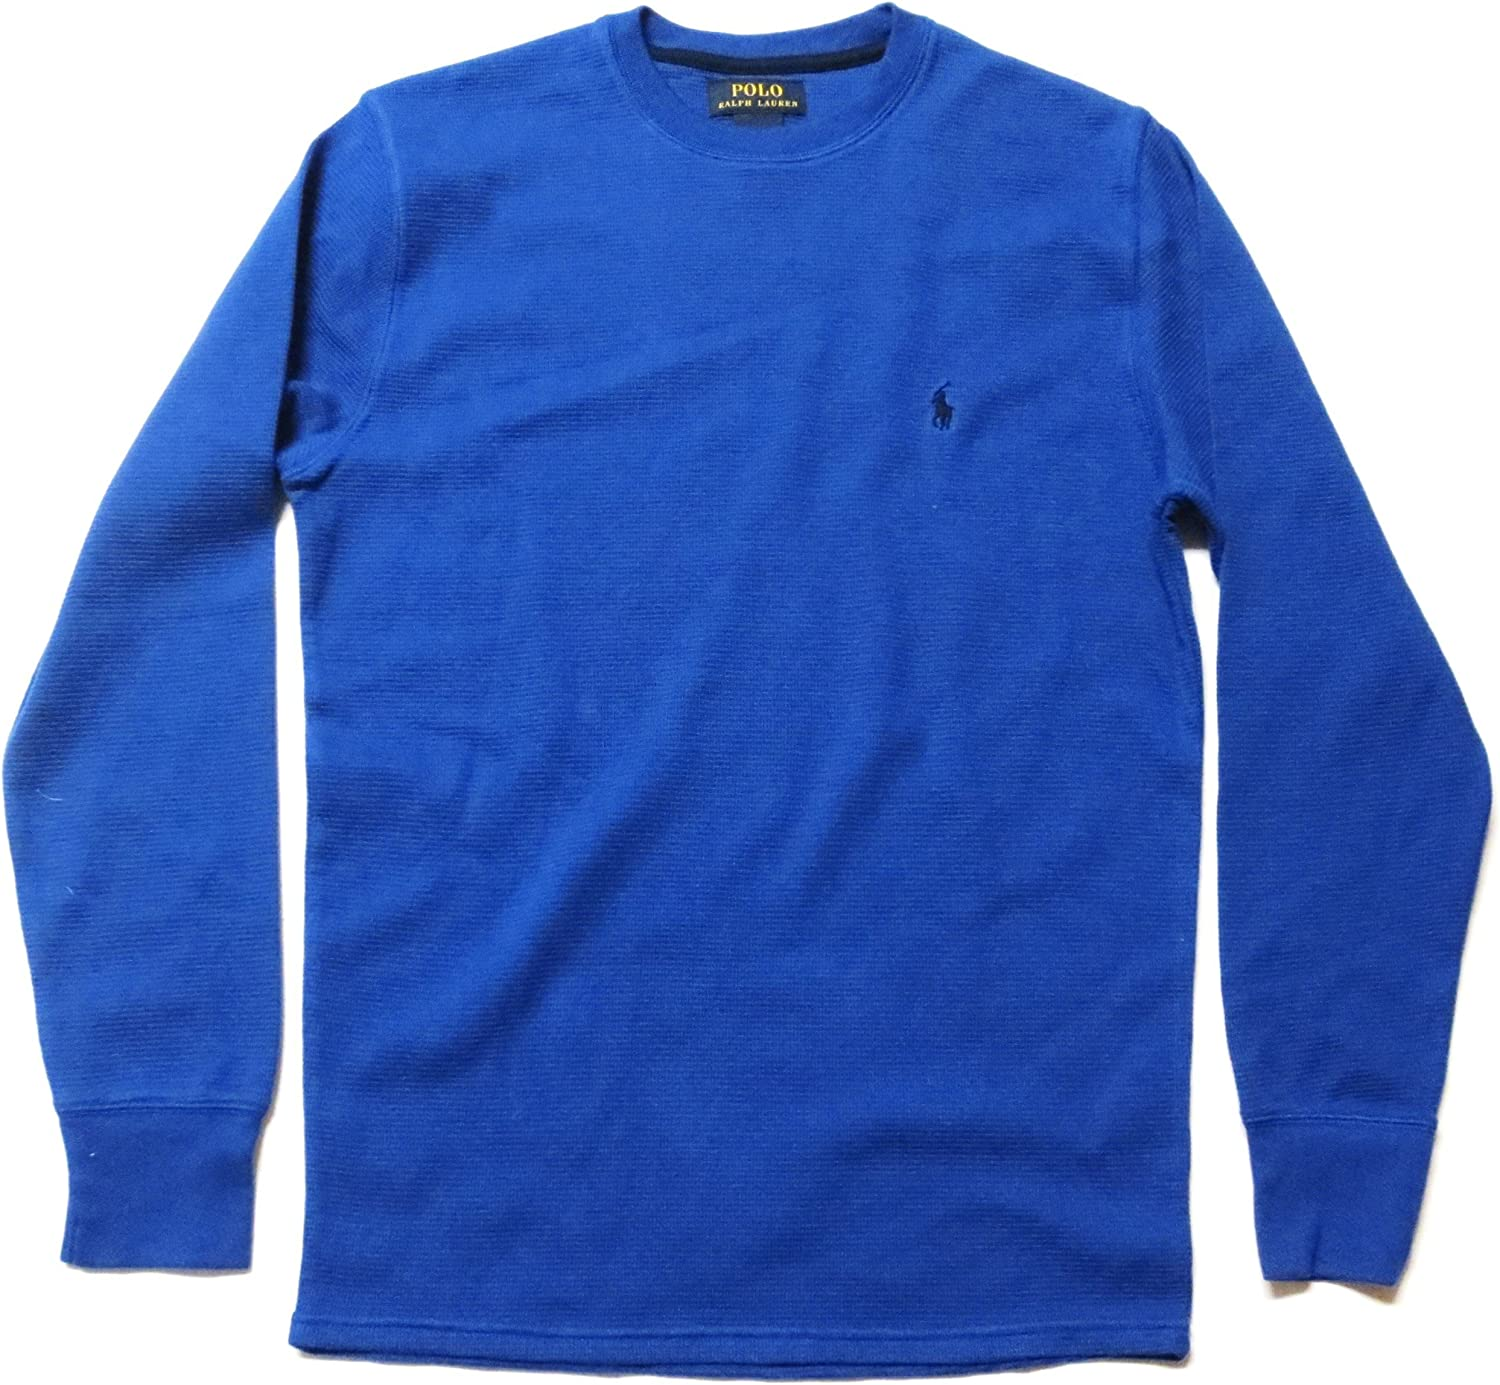 Ralph Lauren Polo Men's Crew Neck Long-Sleeved Waffle Knit T-Shirt Thermal - Small, Royal Blue